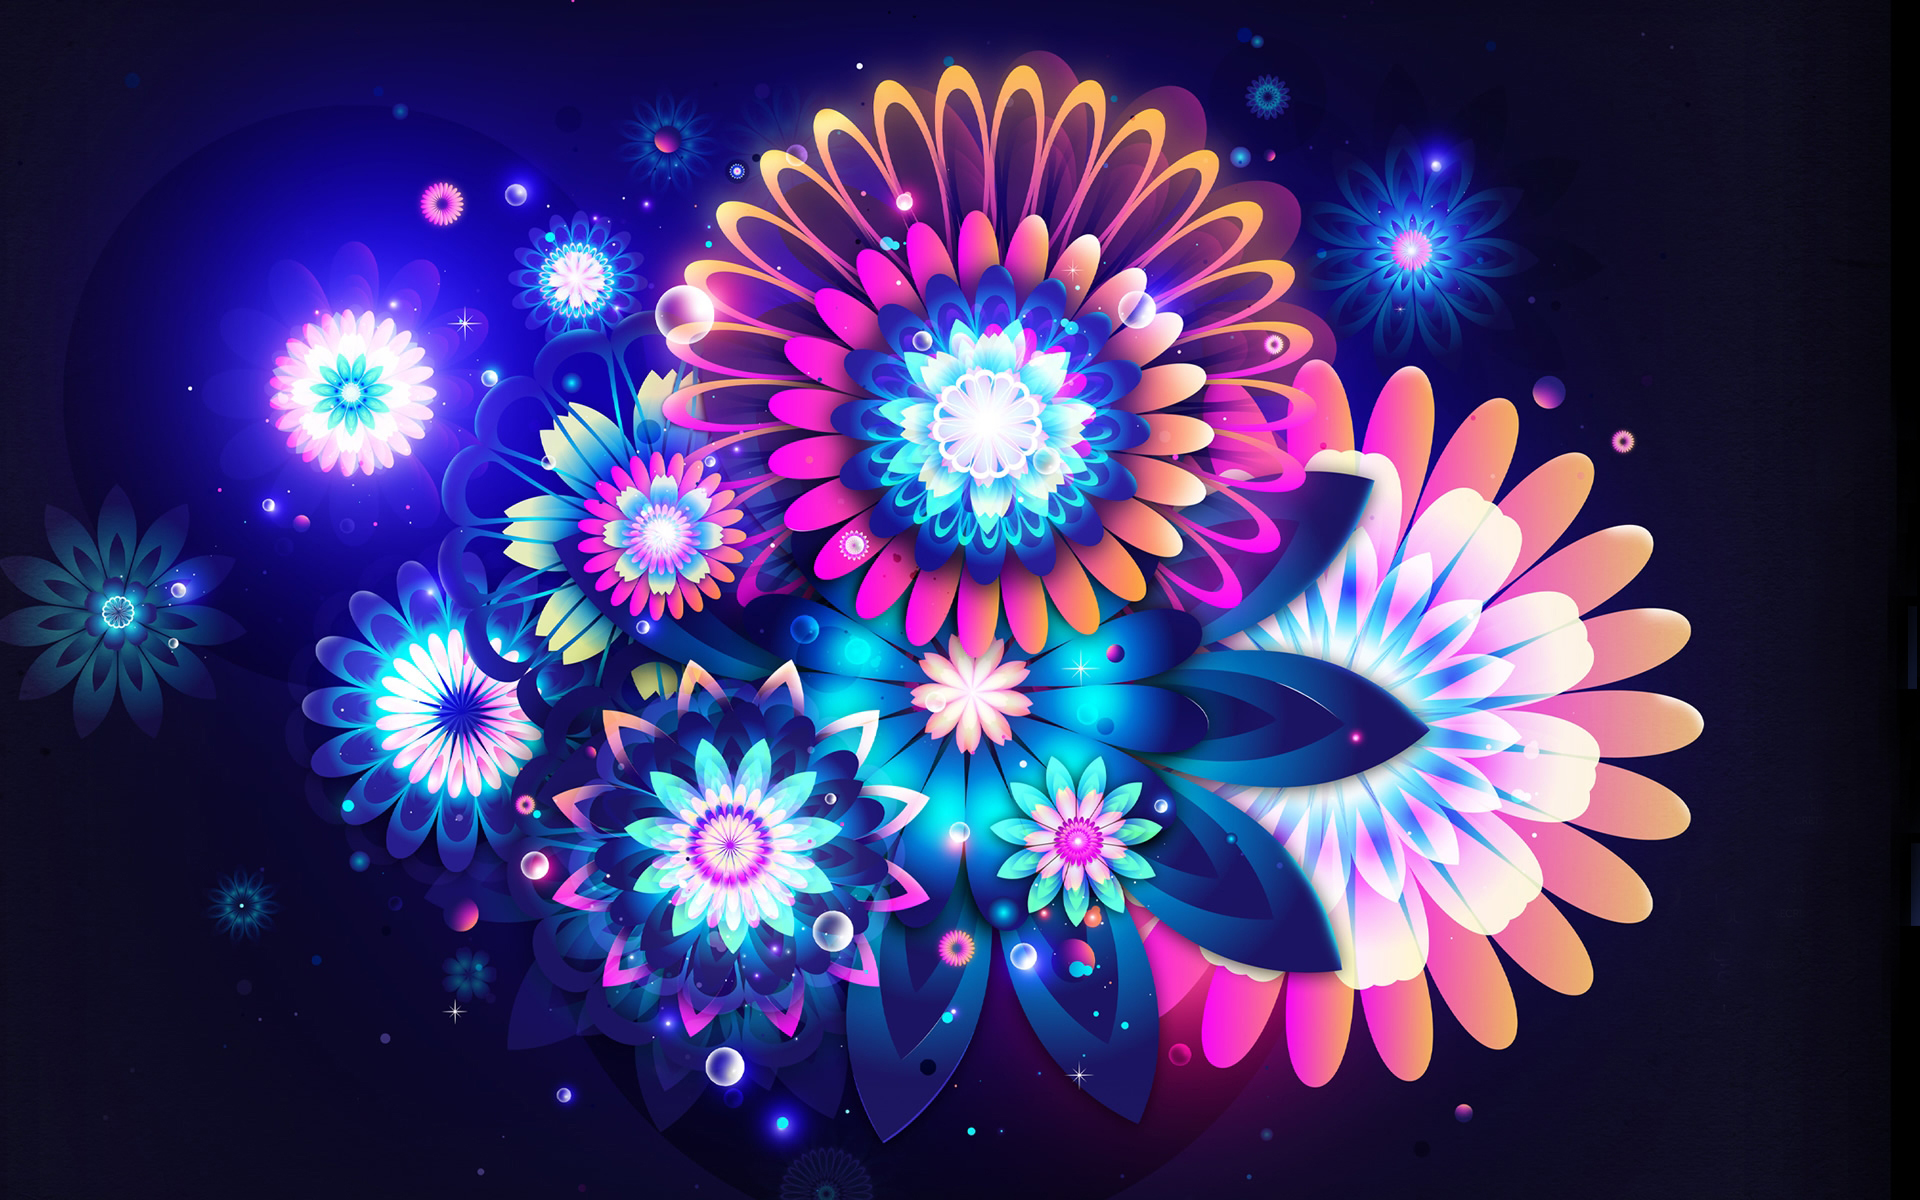 3D Flowers Wallpaper, 3D Flowers Wallpapers and Pictures